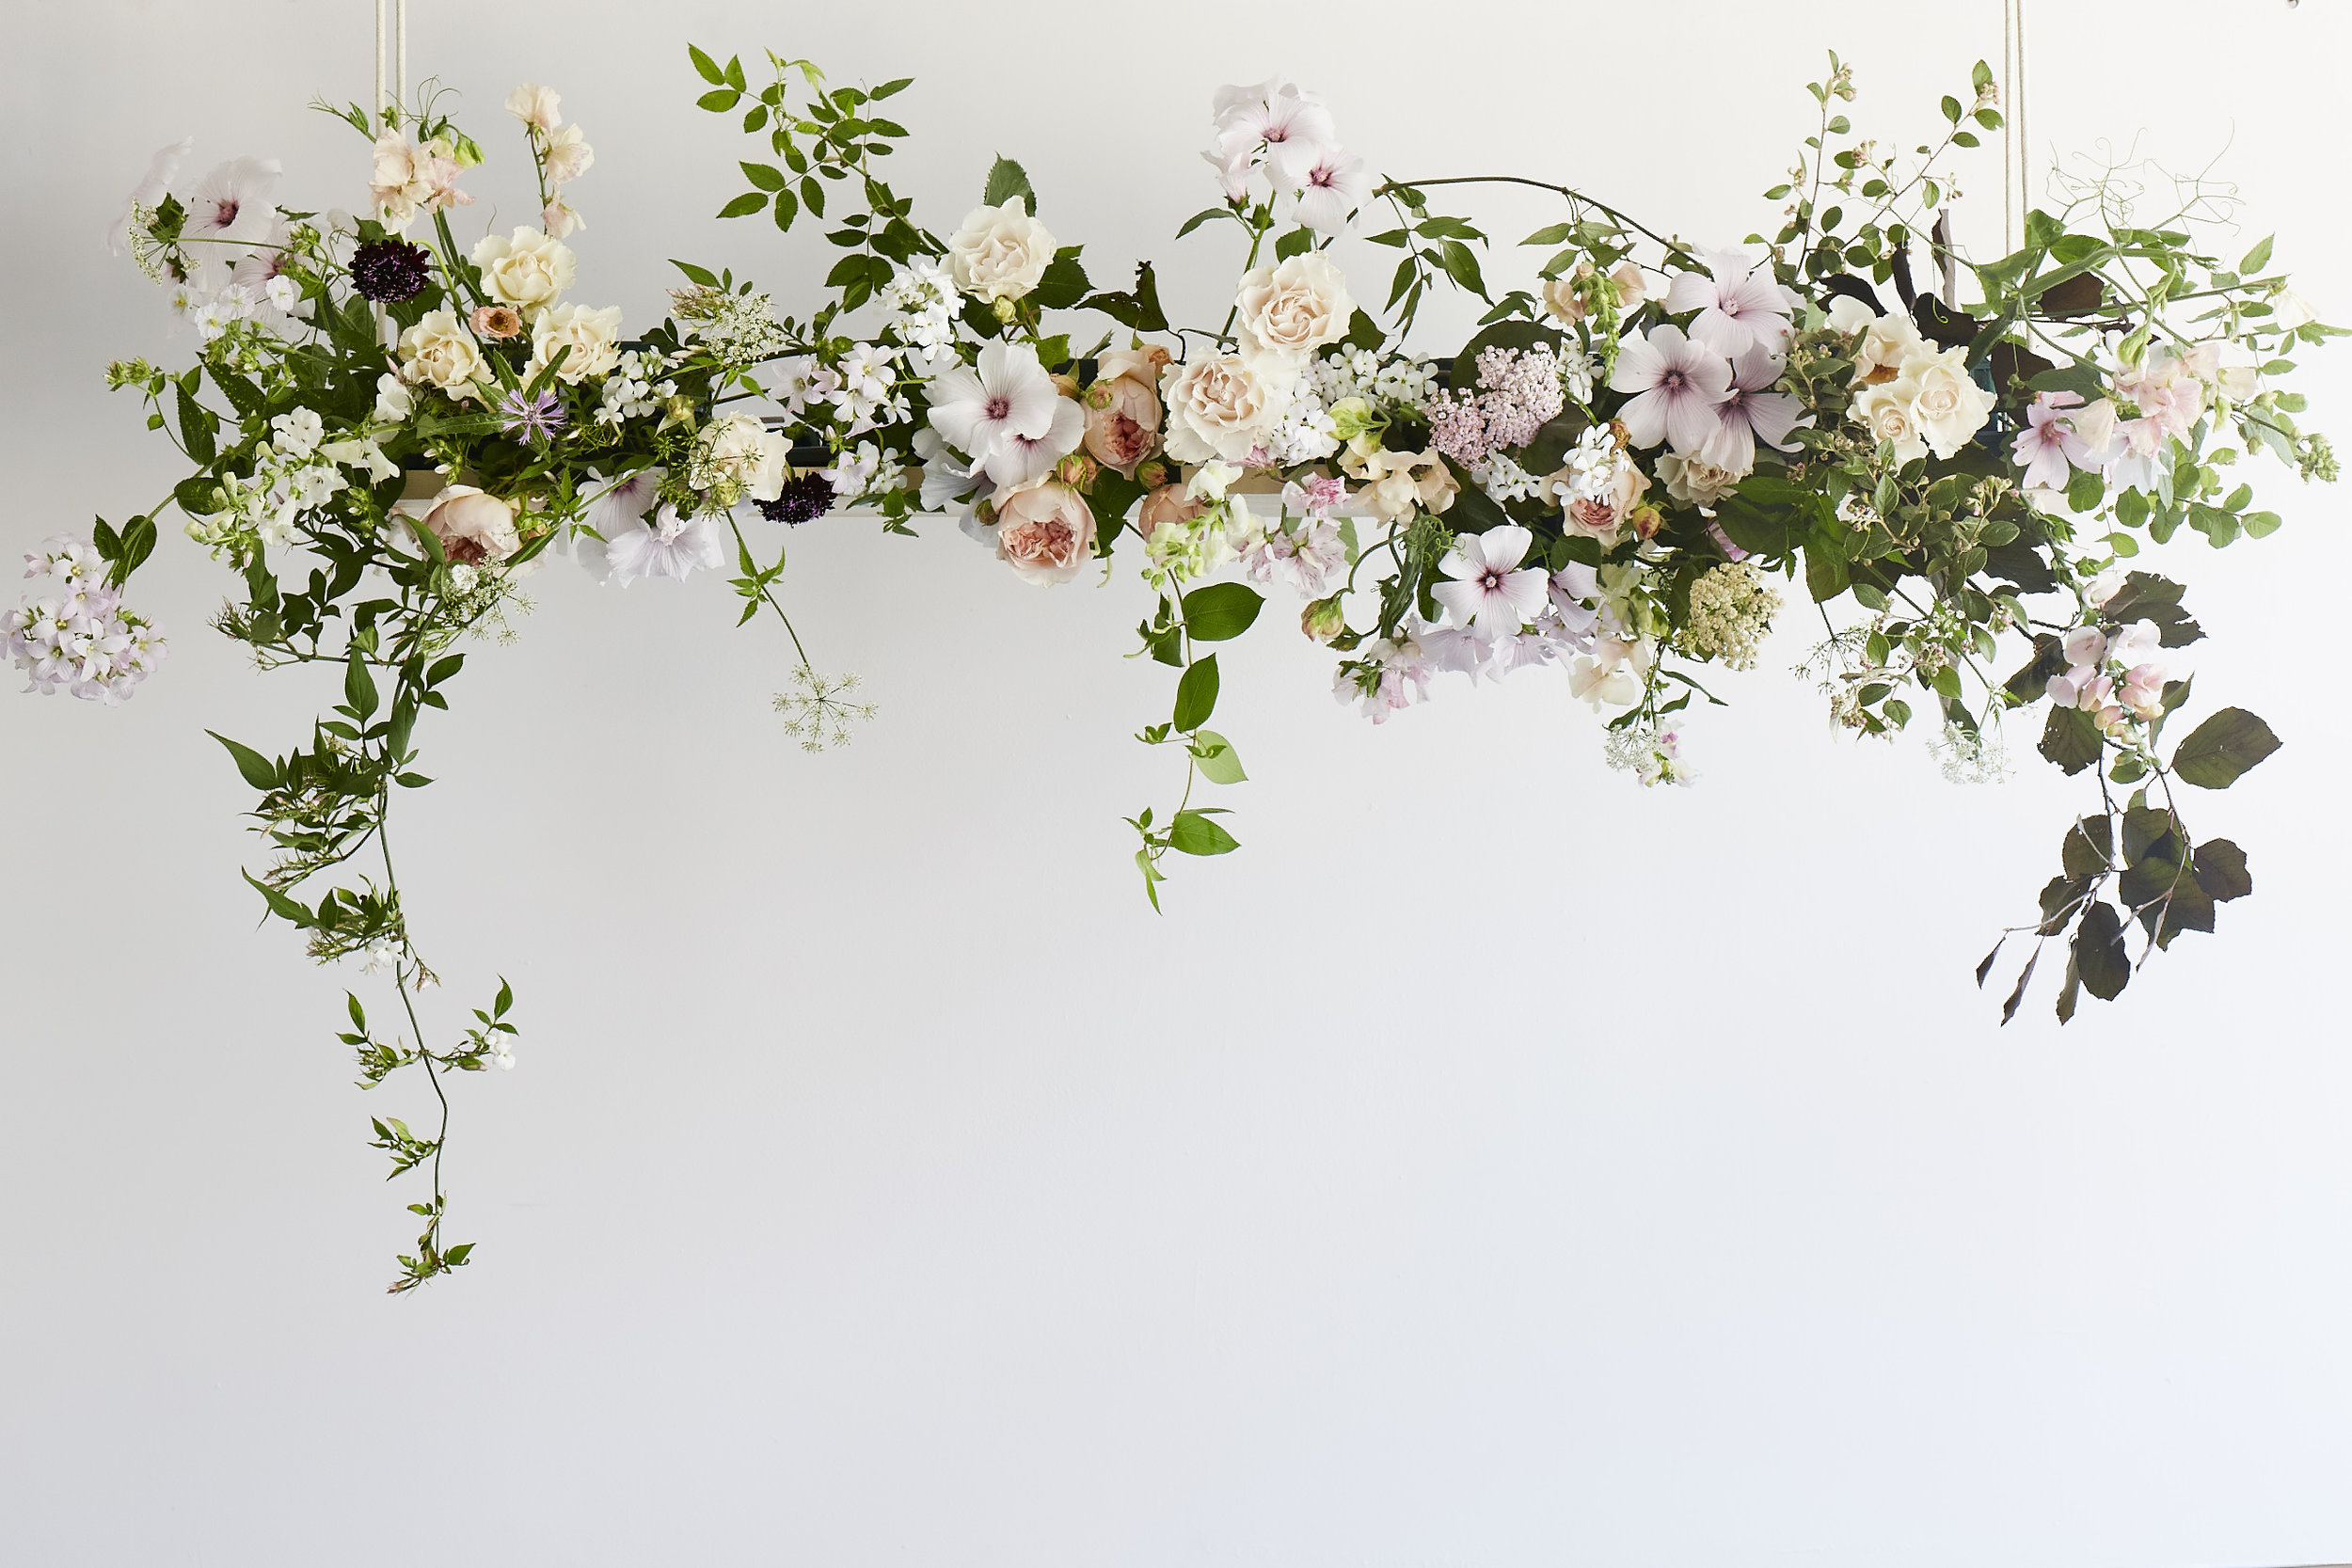 Wild, romantic, whimsical, natural, seasonal, hanging British, installation, flowers